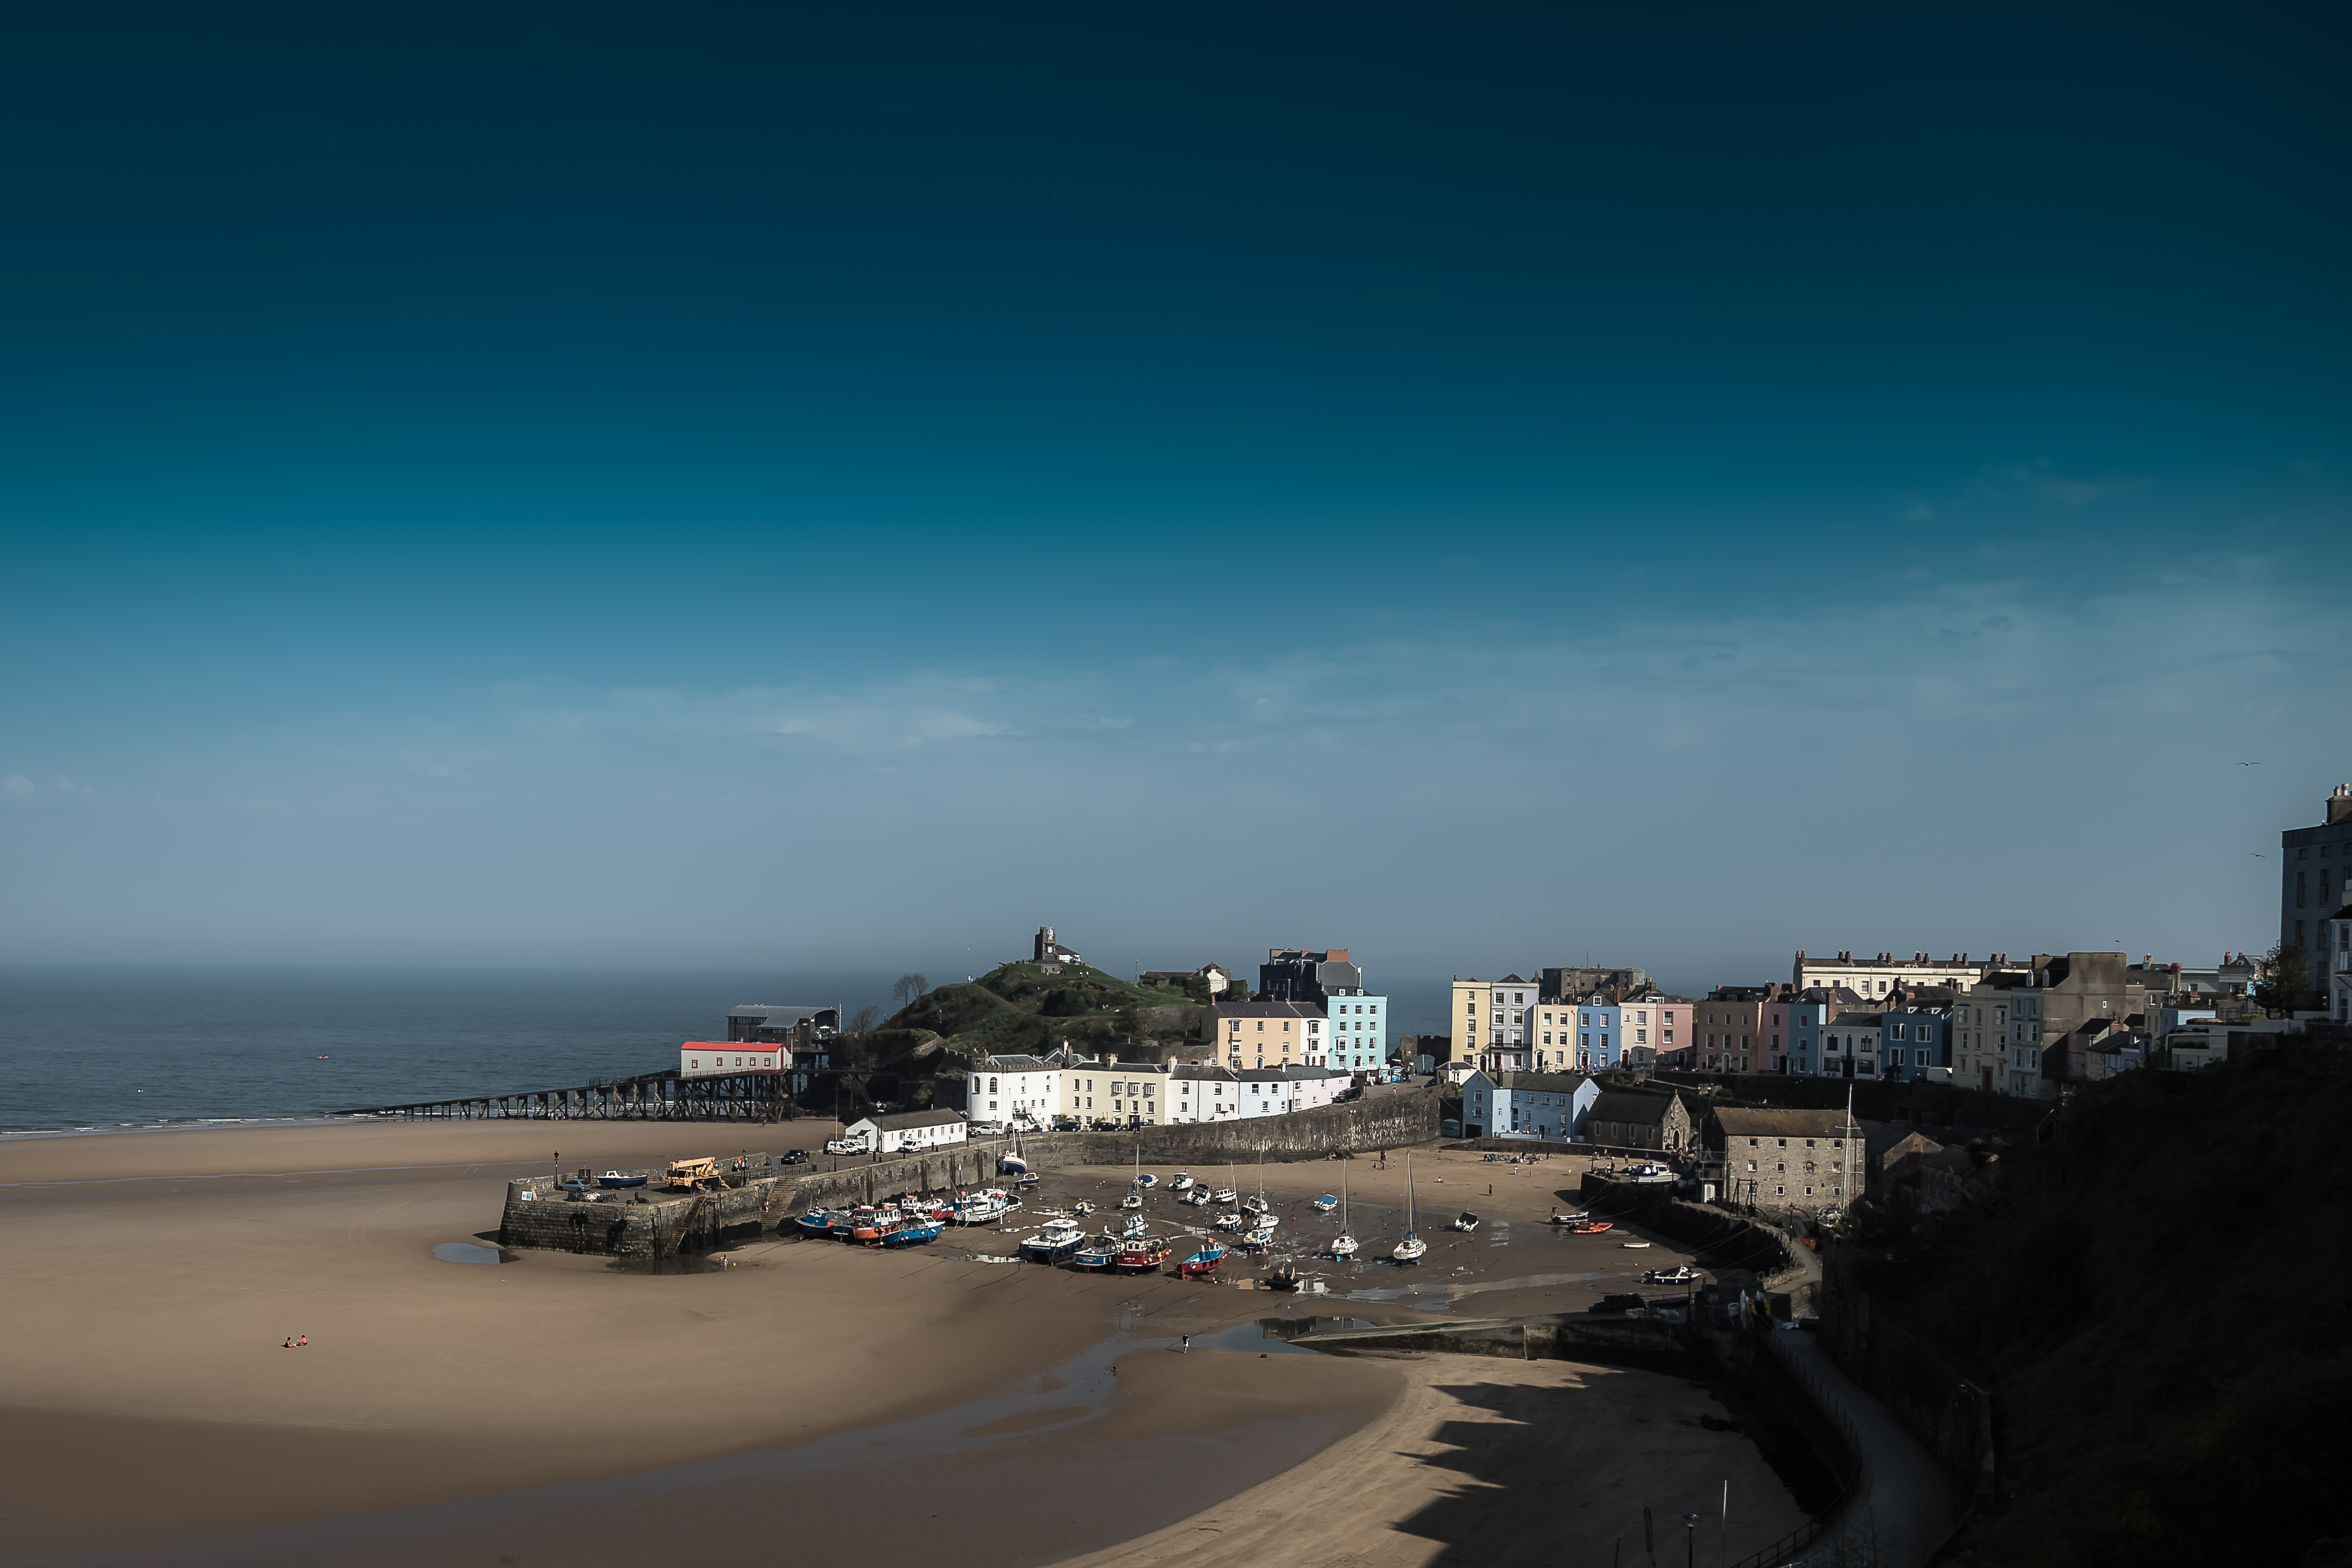 A view of Tenby, Wales